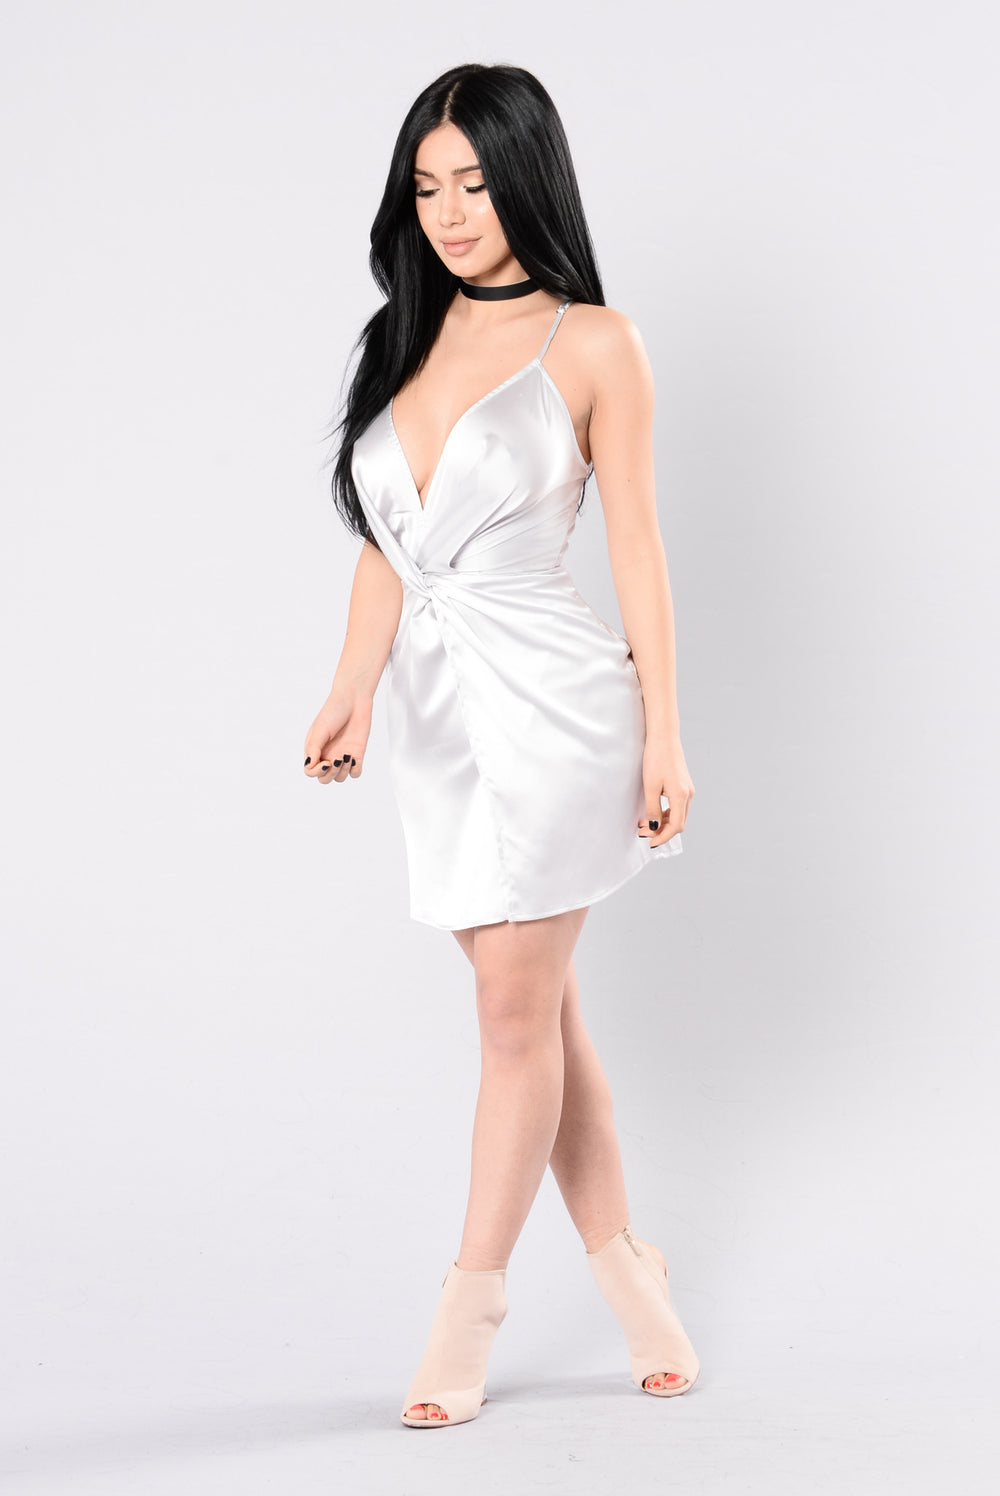 In Your Sweetest Dreams Dress - Silver